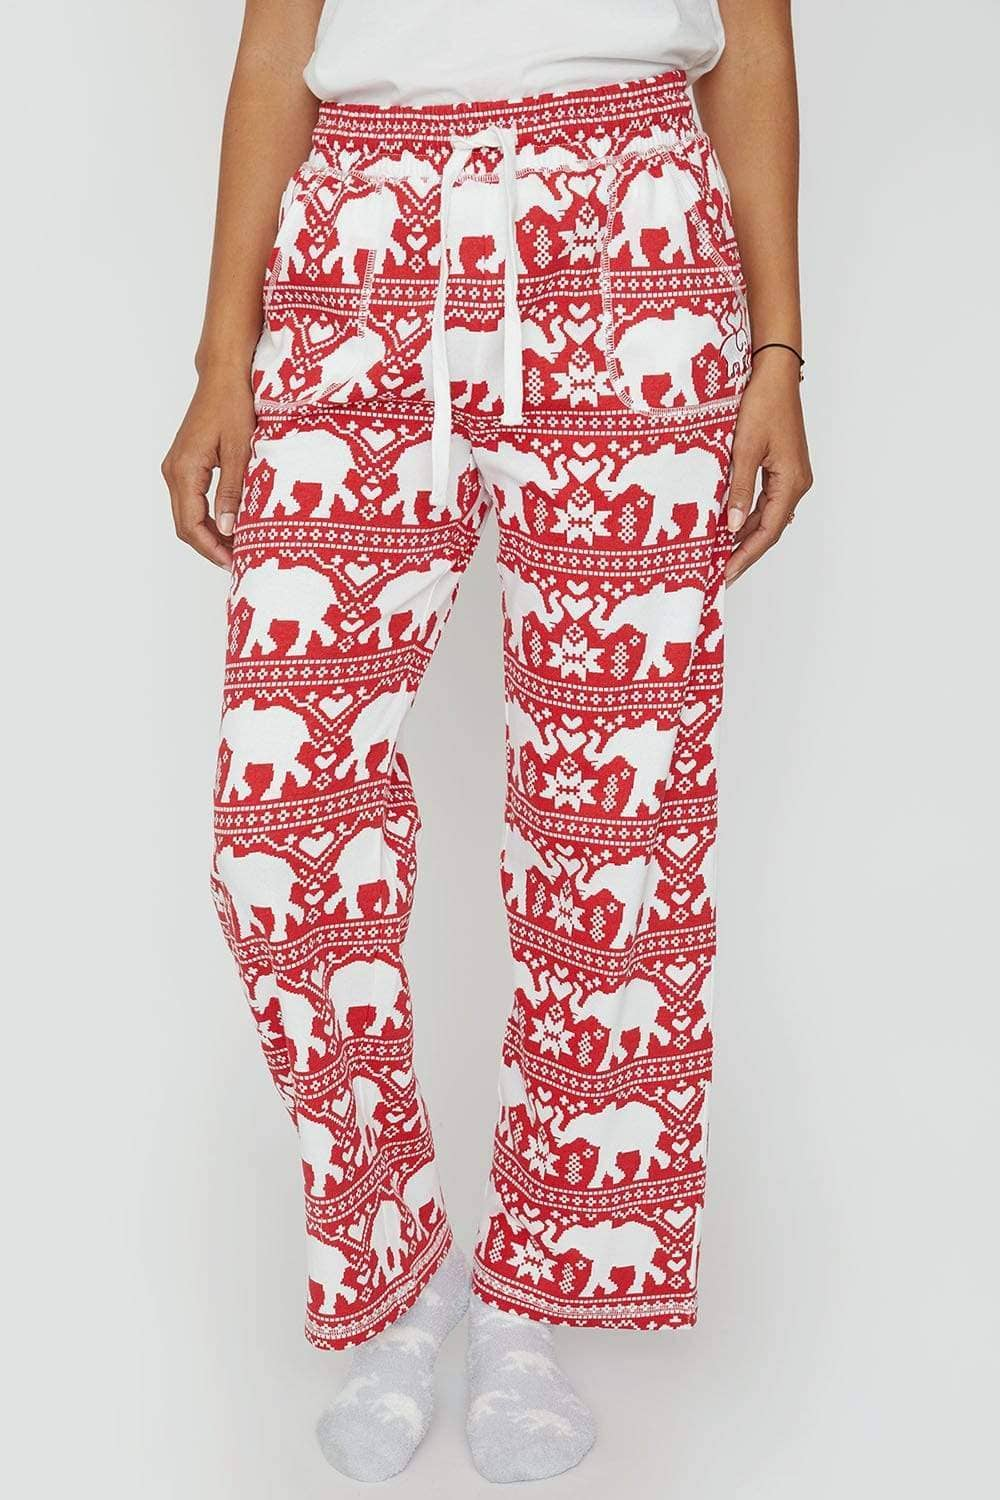 Ivory Ella Sleepwear Ribbon Red Printed PJ Pant